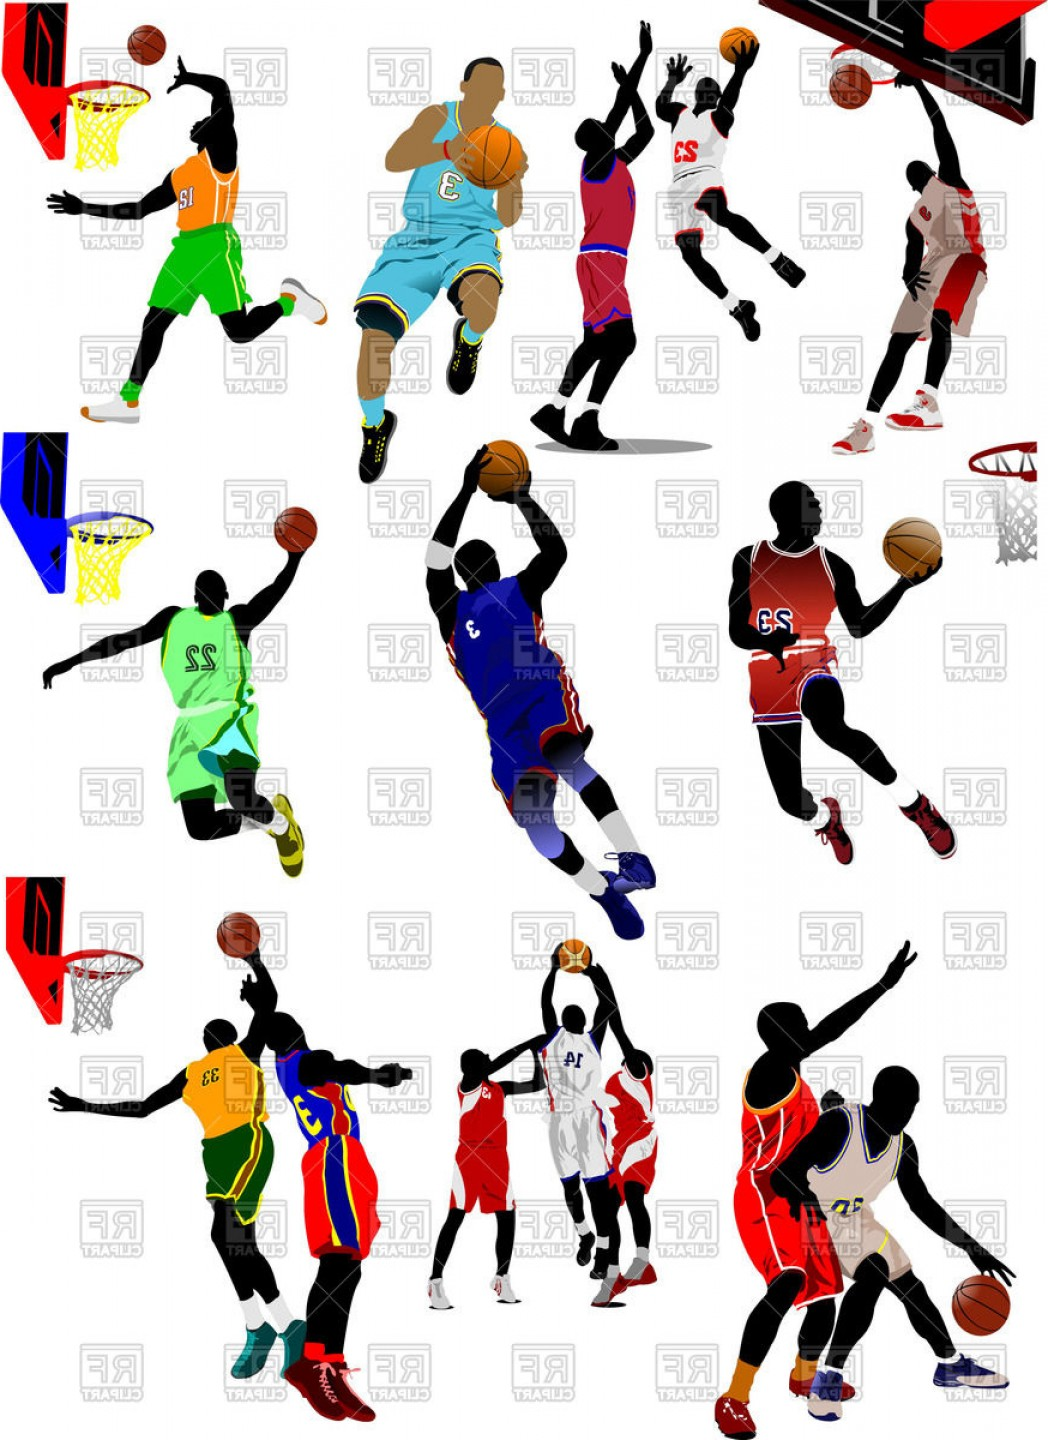 Motion Basketball Vector: Colored Silhouette Of Basketball Players In Motion Vector Clipart